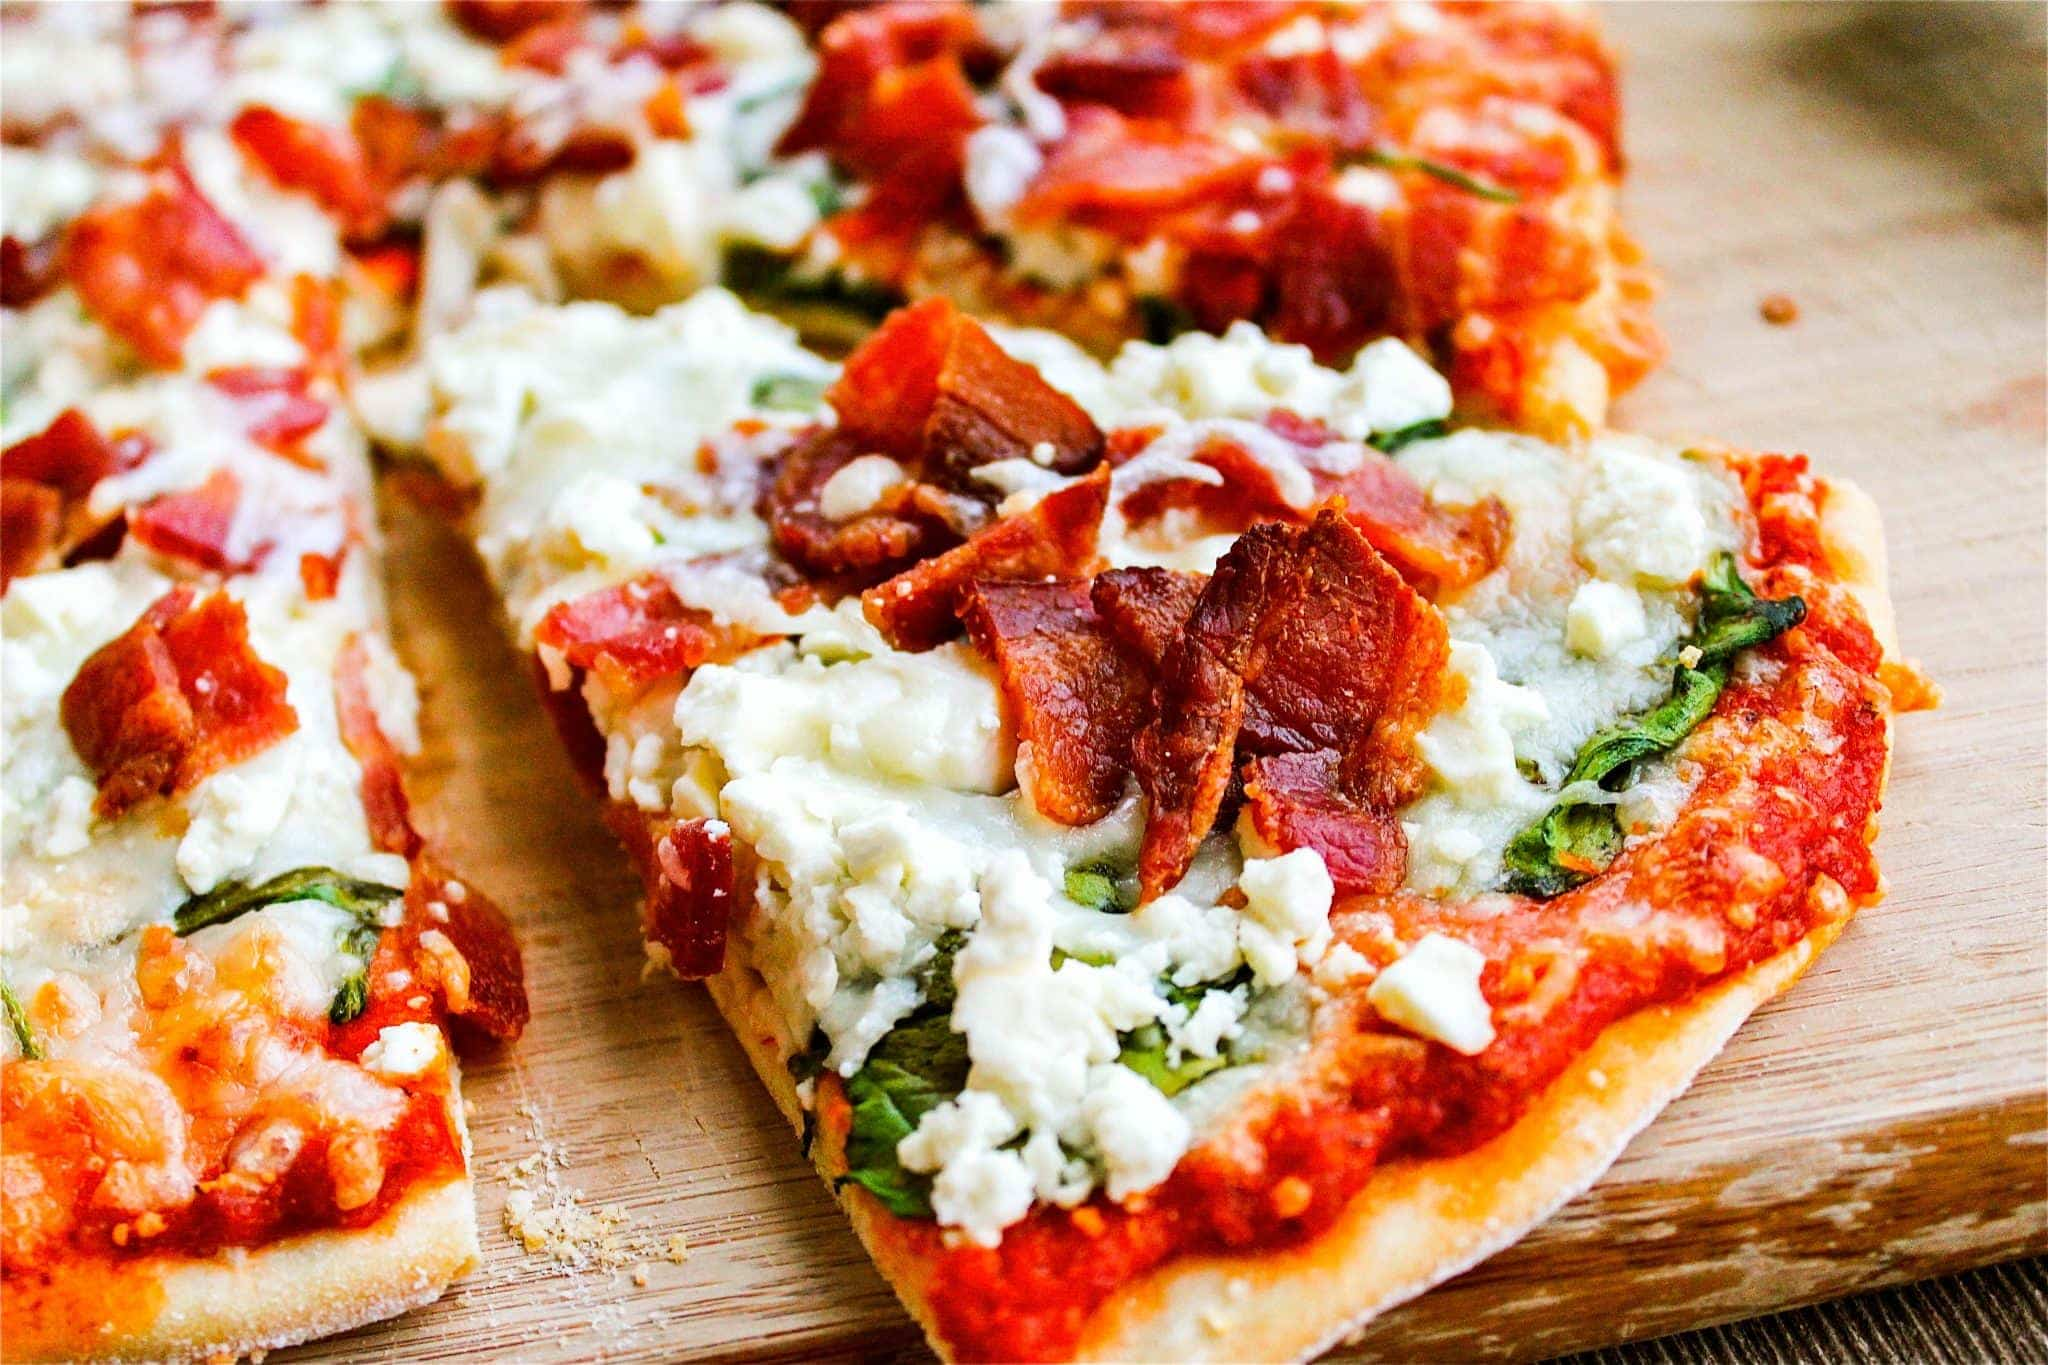 Any pizza is better with this authentic Italian tomato sauce recipe.